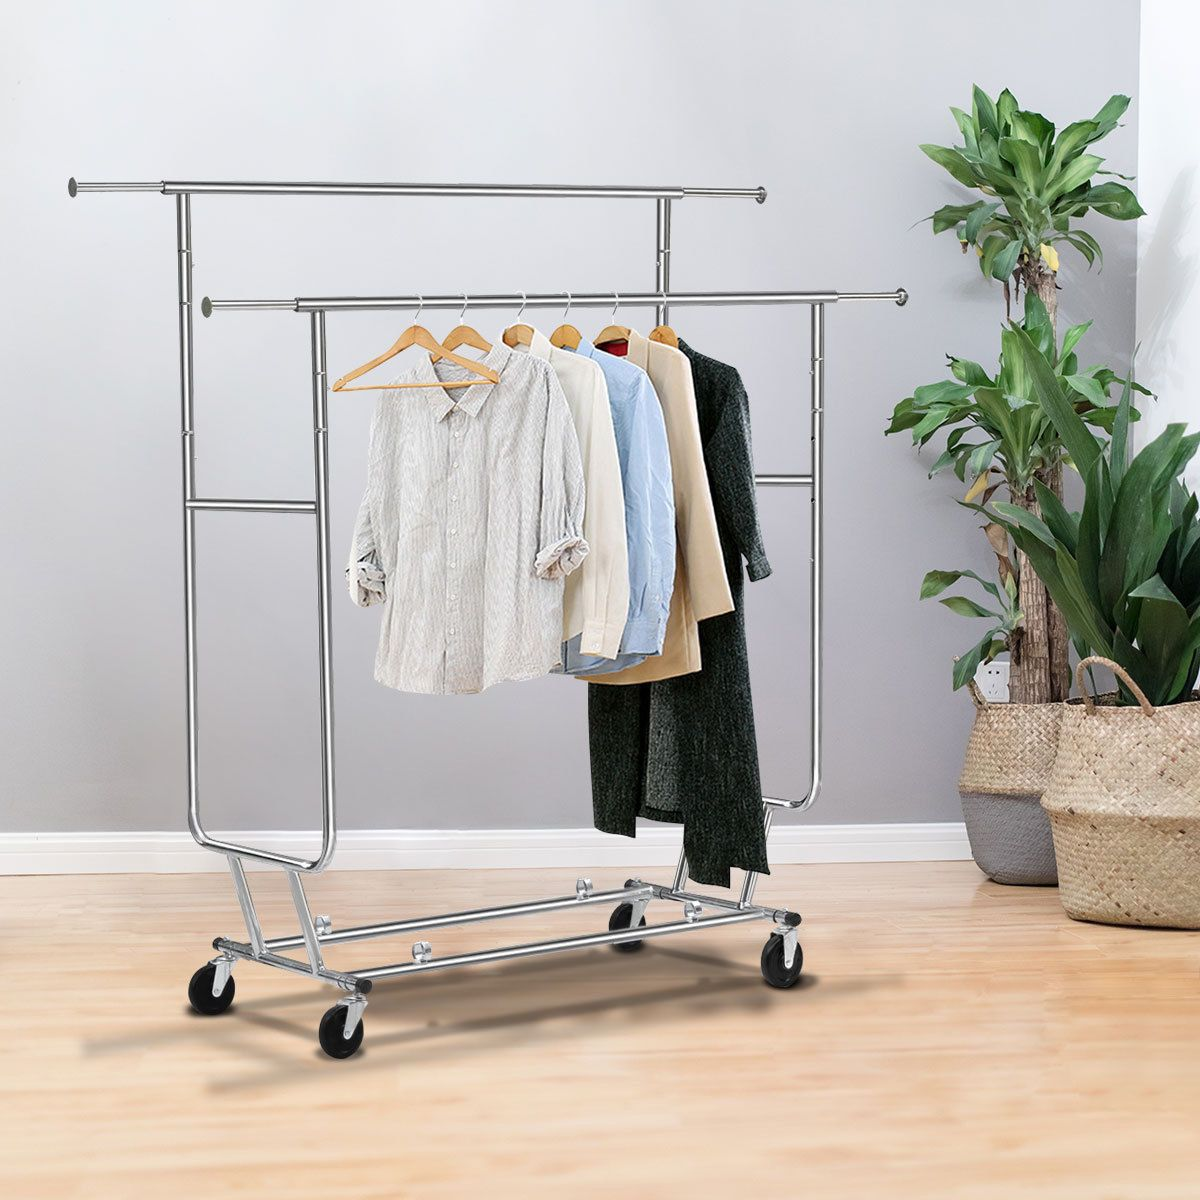 Heavy Duty Clothing Garment Adjustable Salesman Rolling Rack Hanger Chrome